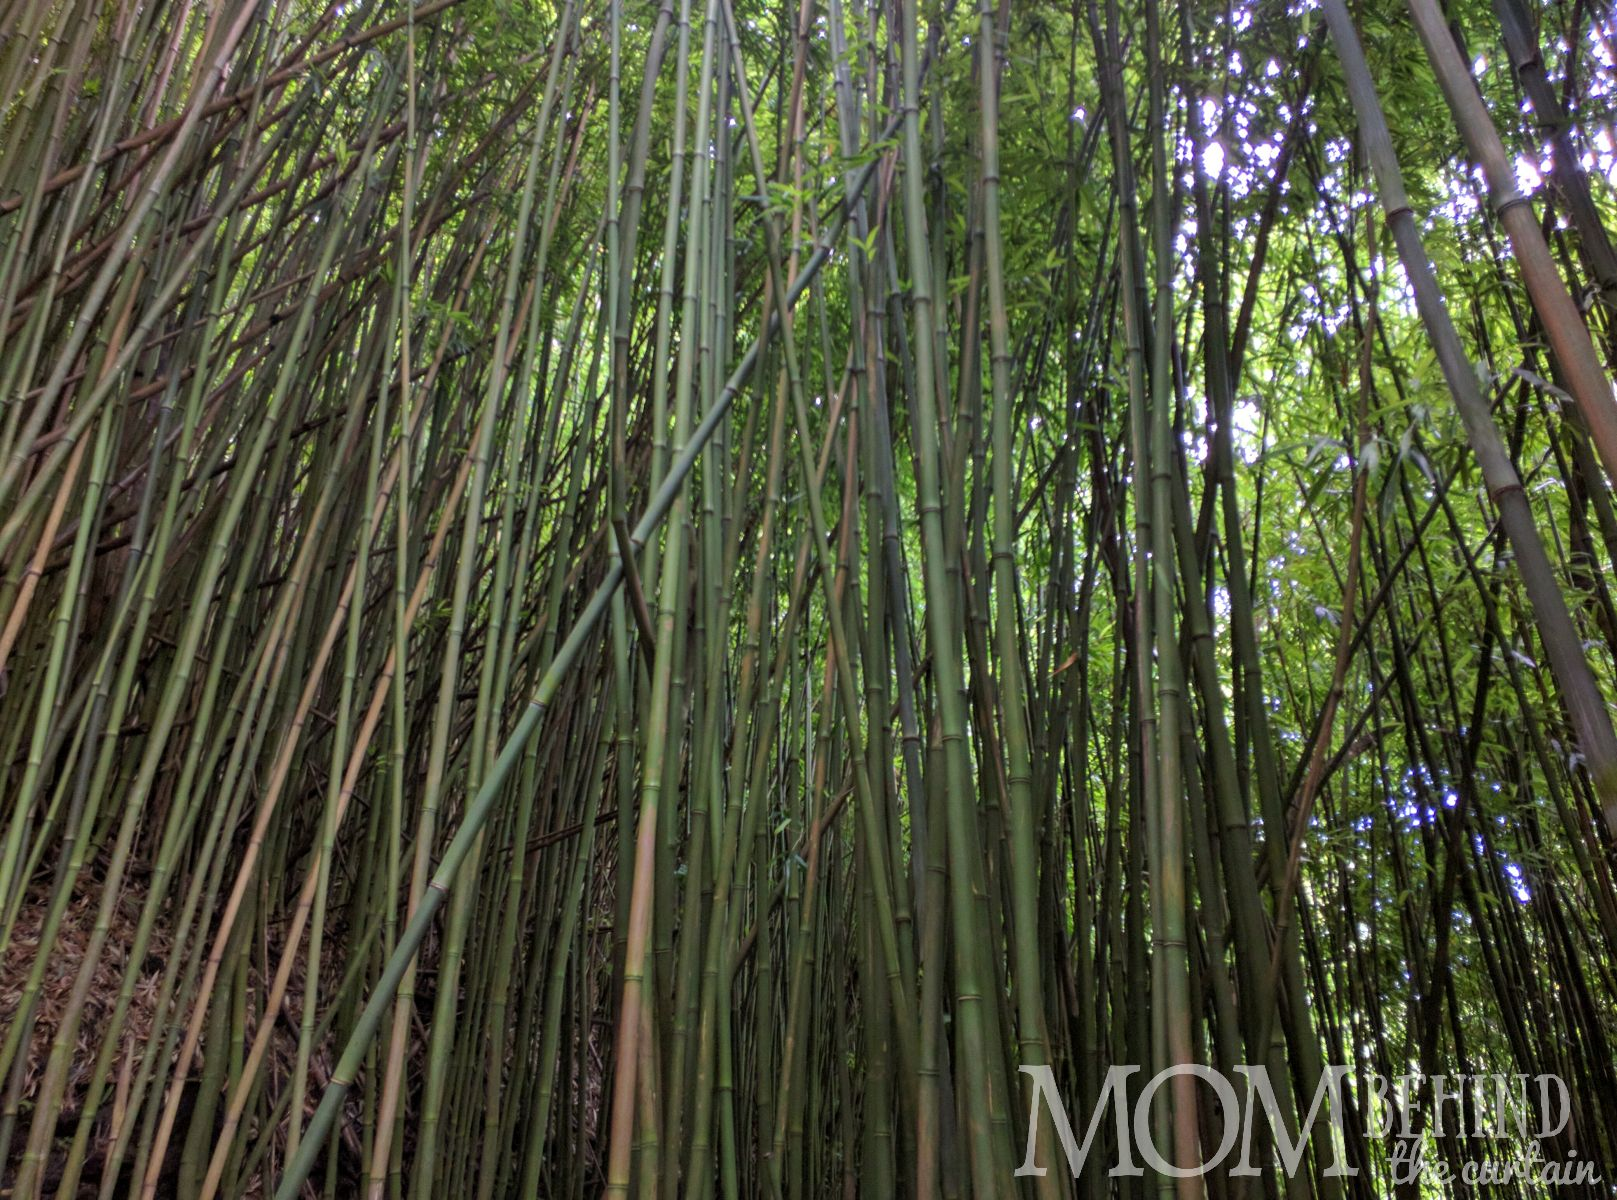 Bamboo in the Bamboo Forest, Maui.